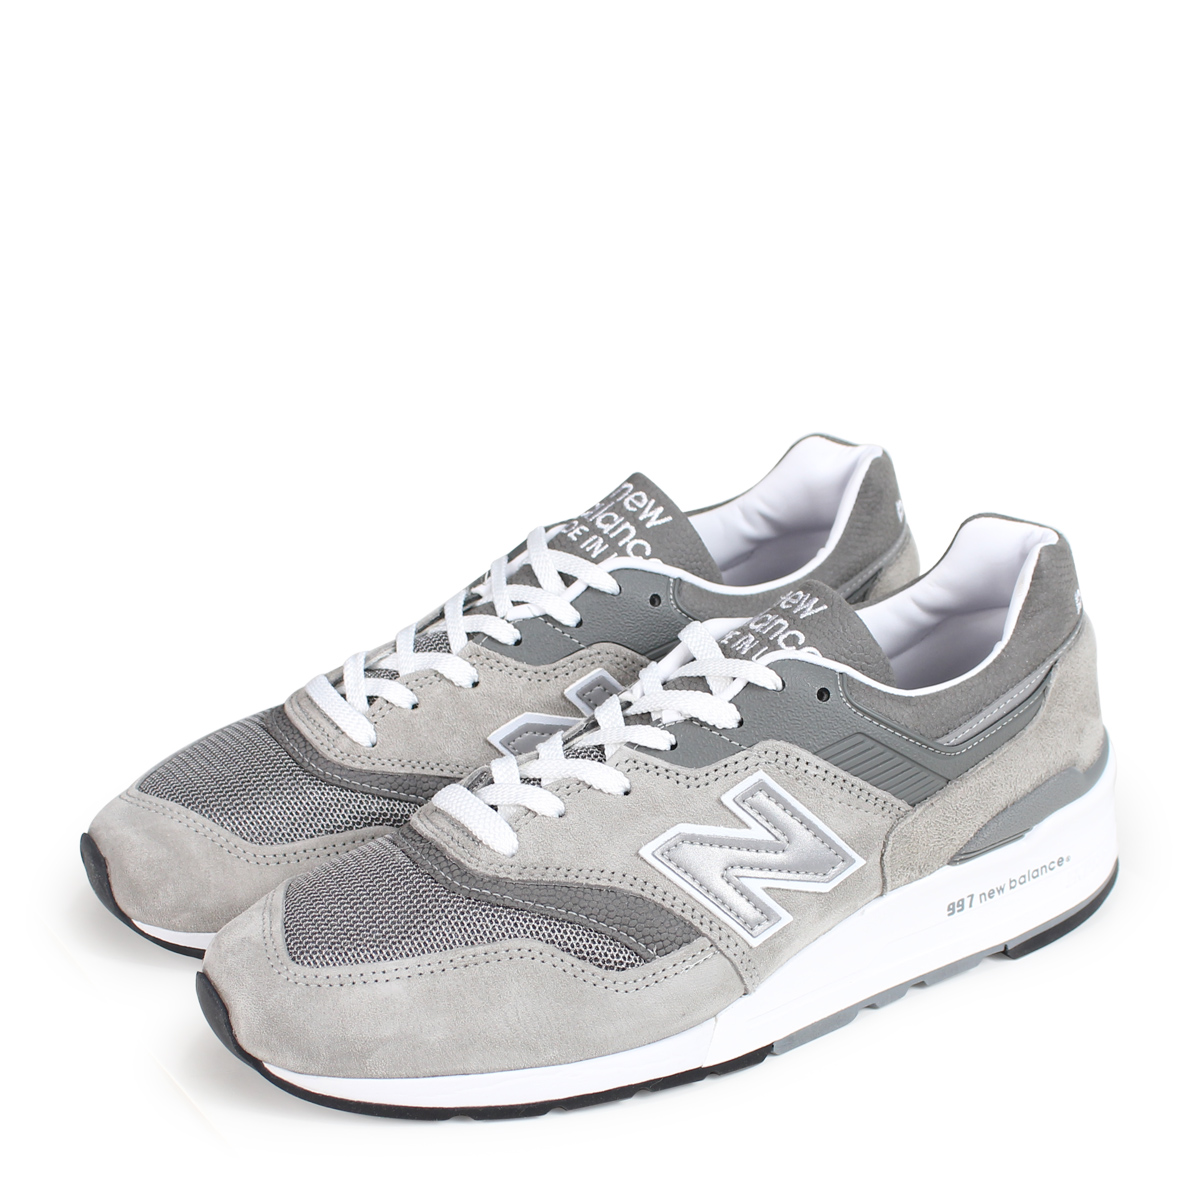 quality design 58433 c9019 new balance M997GY2 New Balance 997 men's sneakers D Wise MADE IN USA gray  [193]